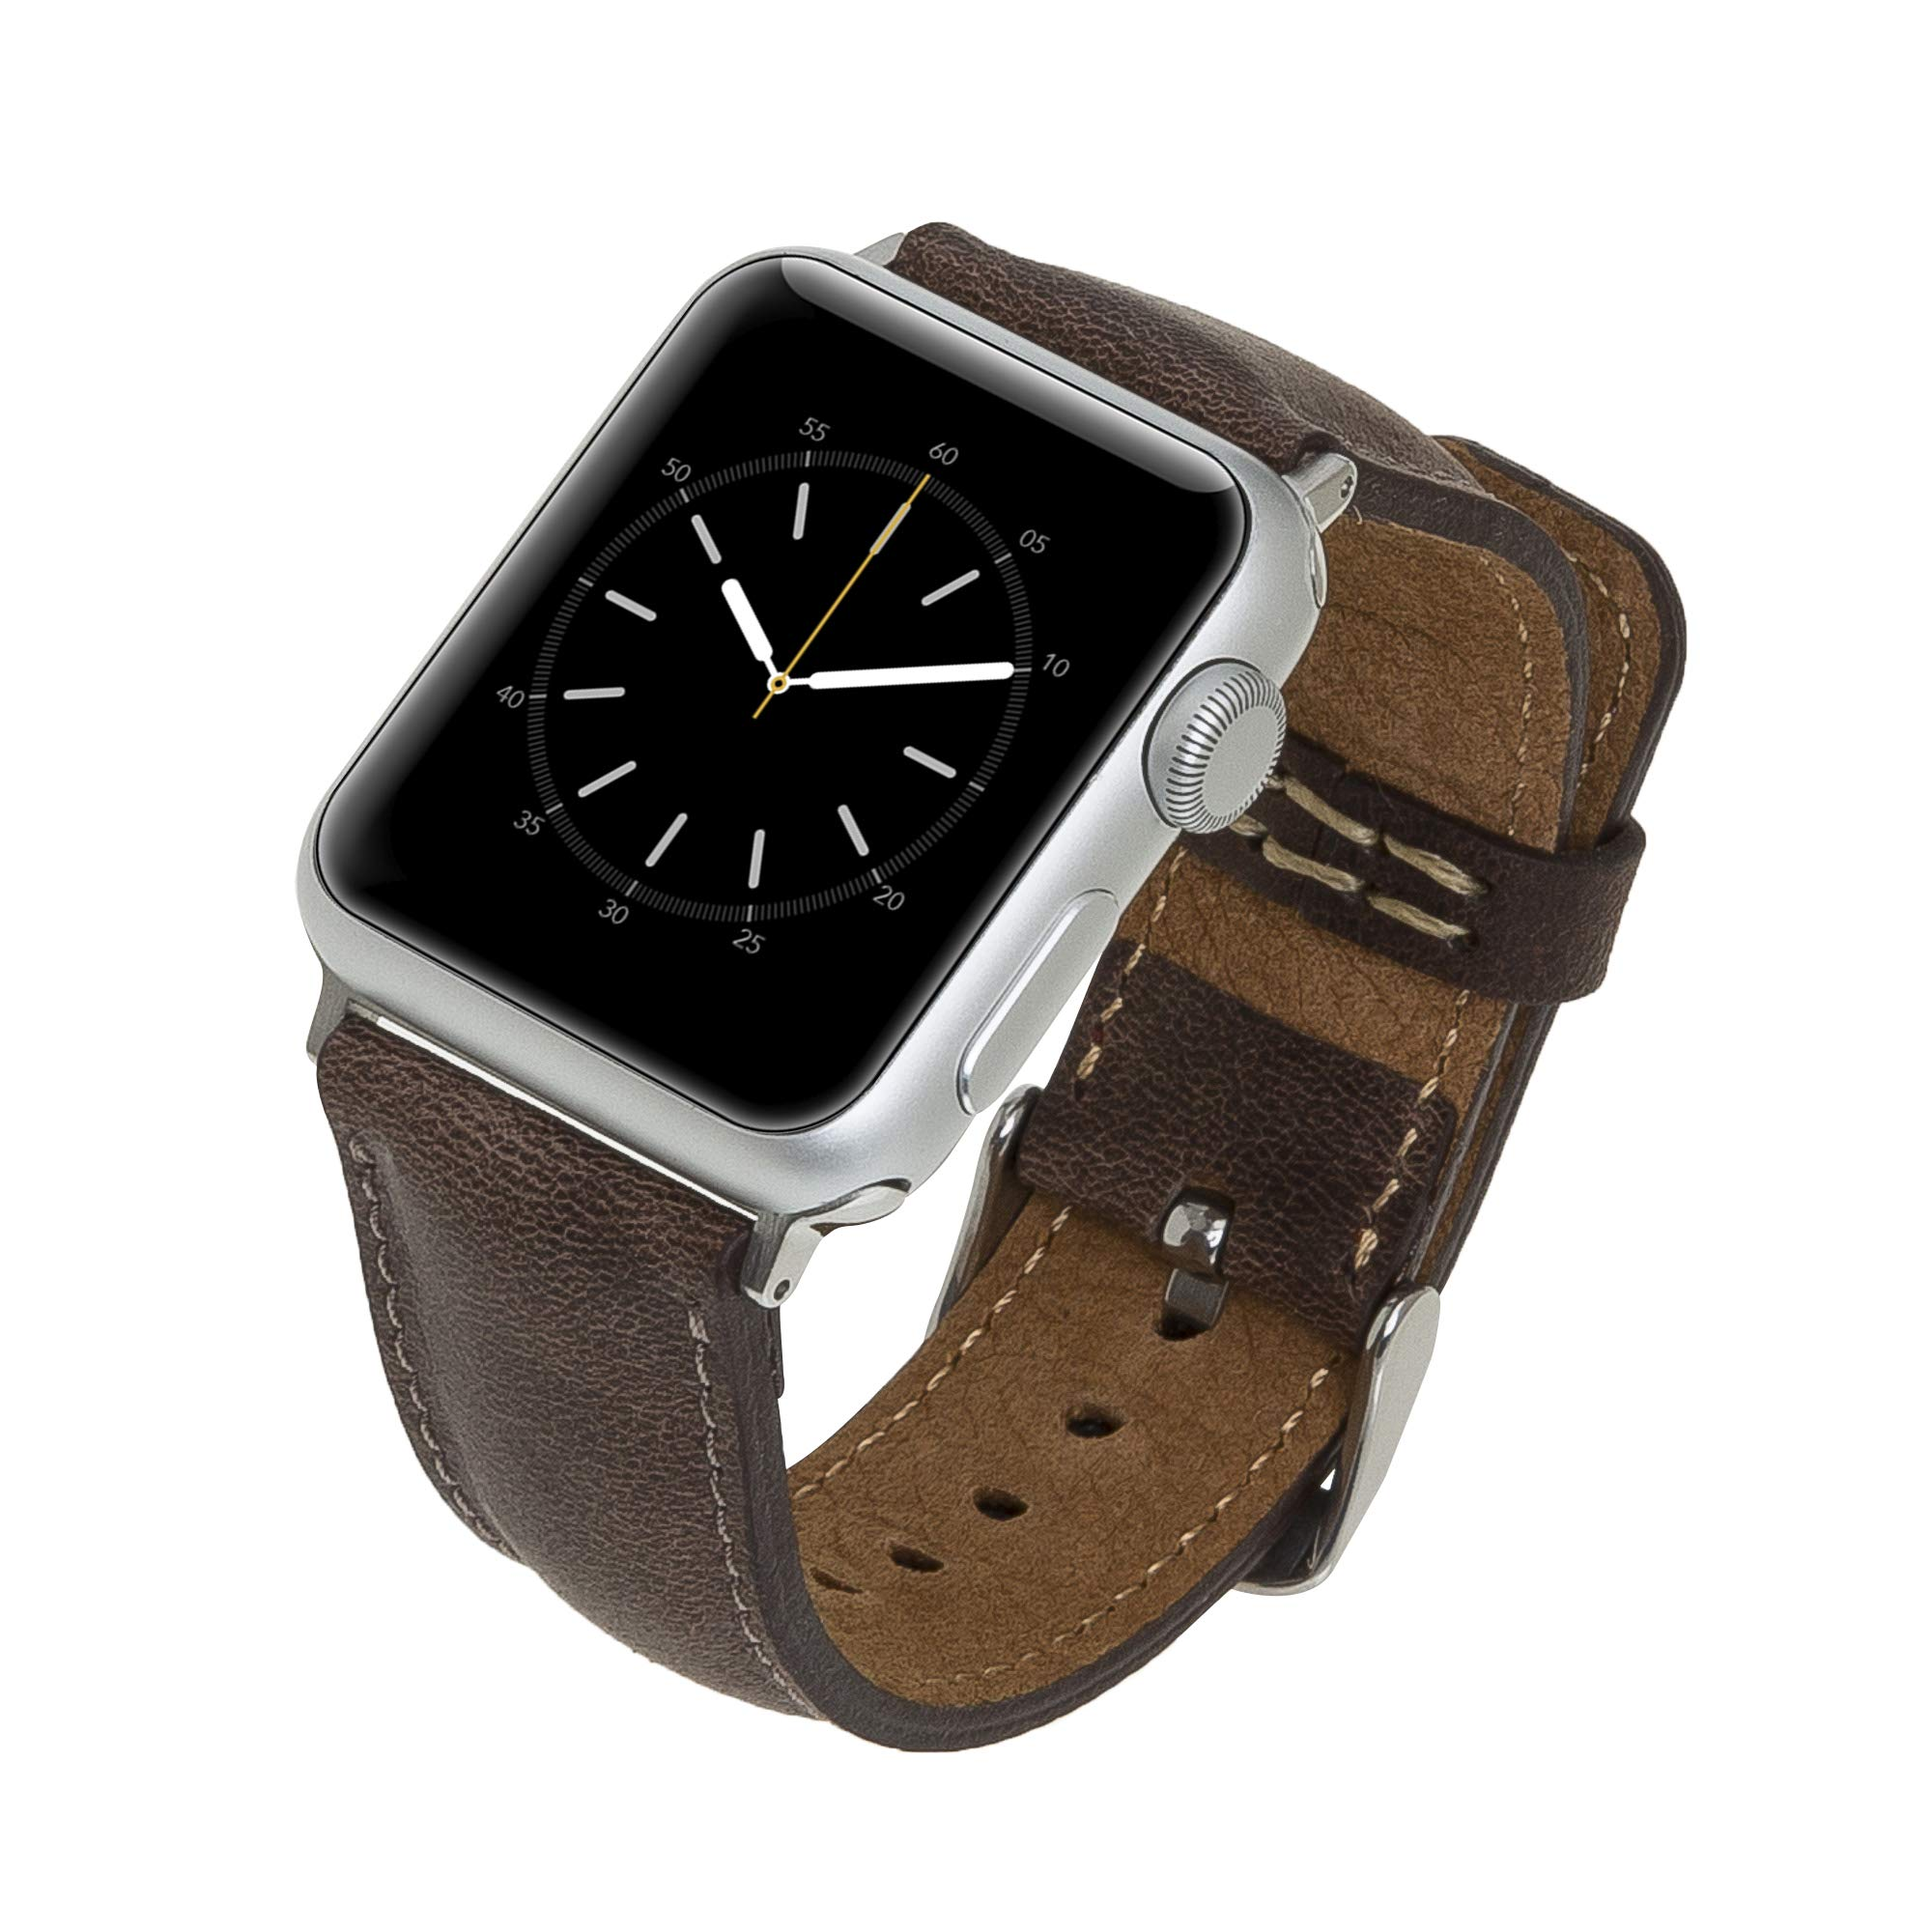 Venito Tuscany Handmade Premium Leather Watch Band Strap Compatible with The Newest Apple Watch iwatch Series 5 as Well as Series 1,2,3, 4 (Coffee Brown w/Silver Stainless Steel Hardware, 42-44mm) by Venito